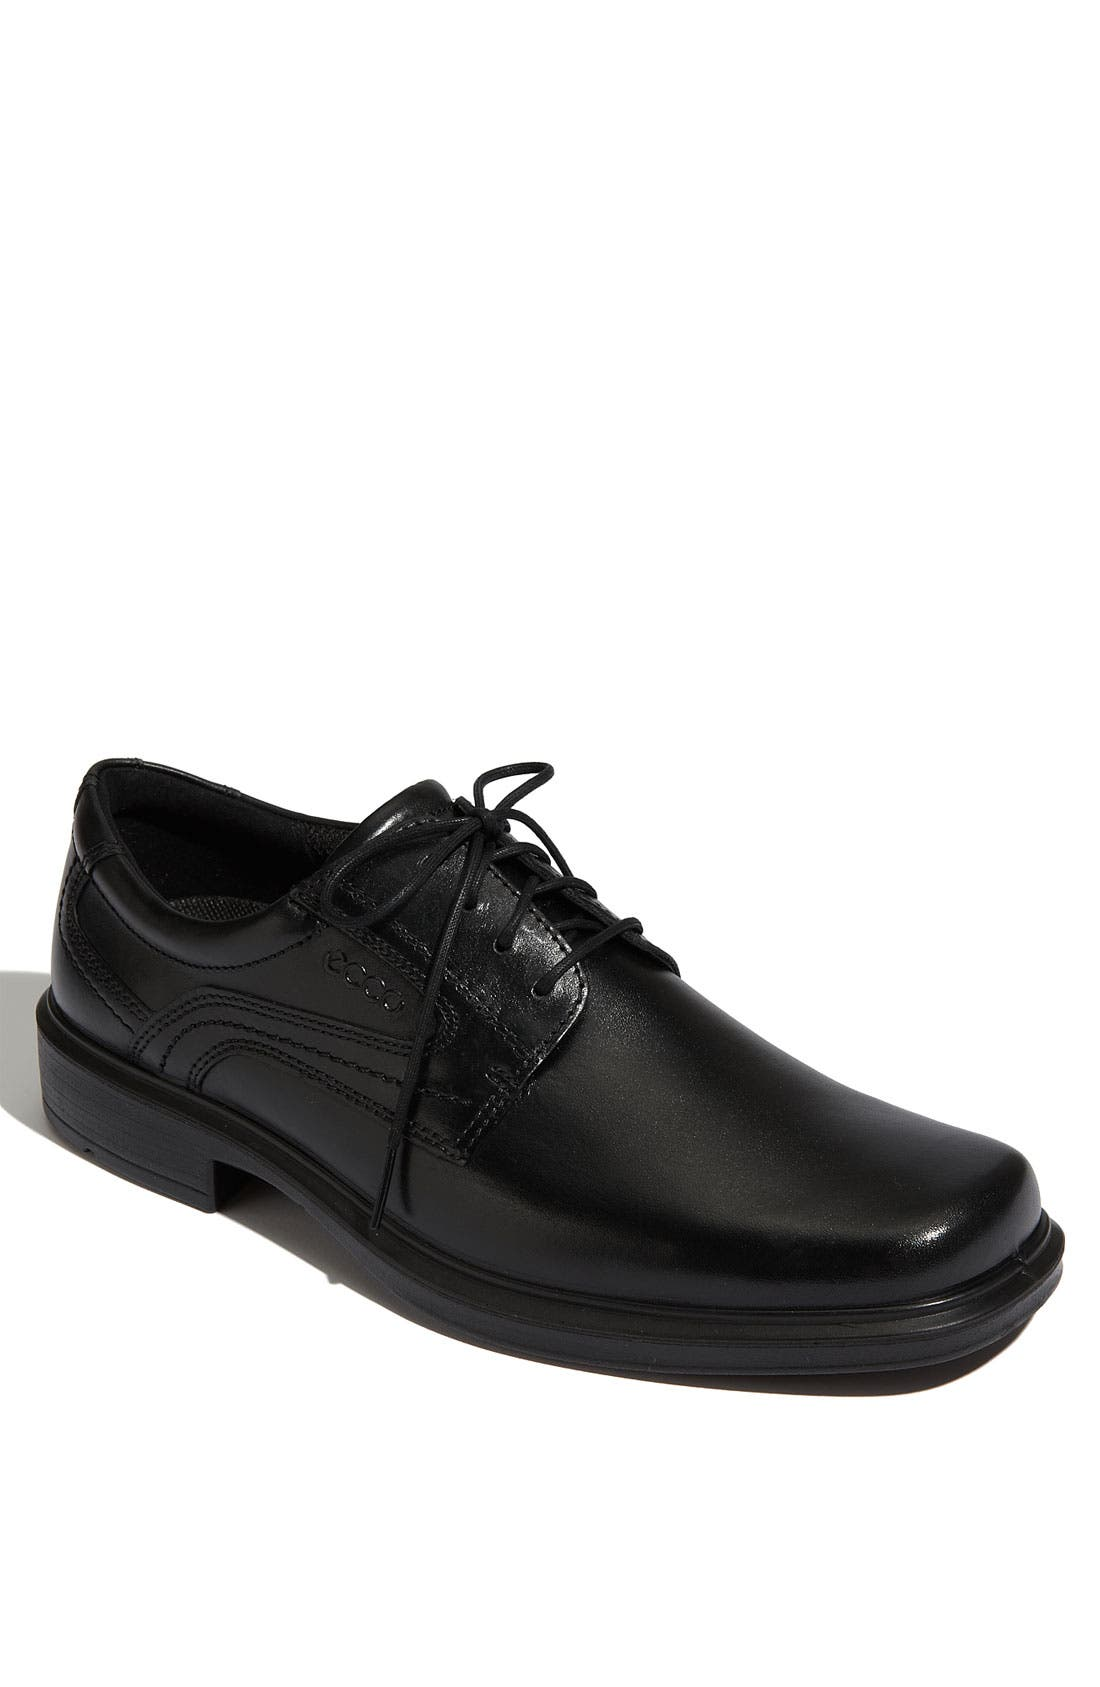 Alternate Image 1 Selected - ECCO 'Helsinki' Plain Toe Oxford (Men)